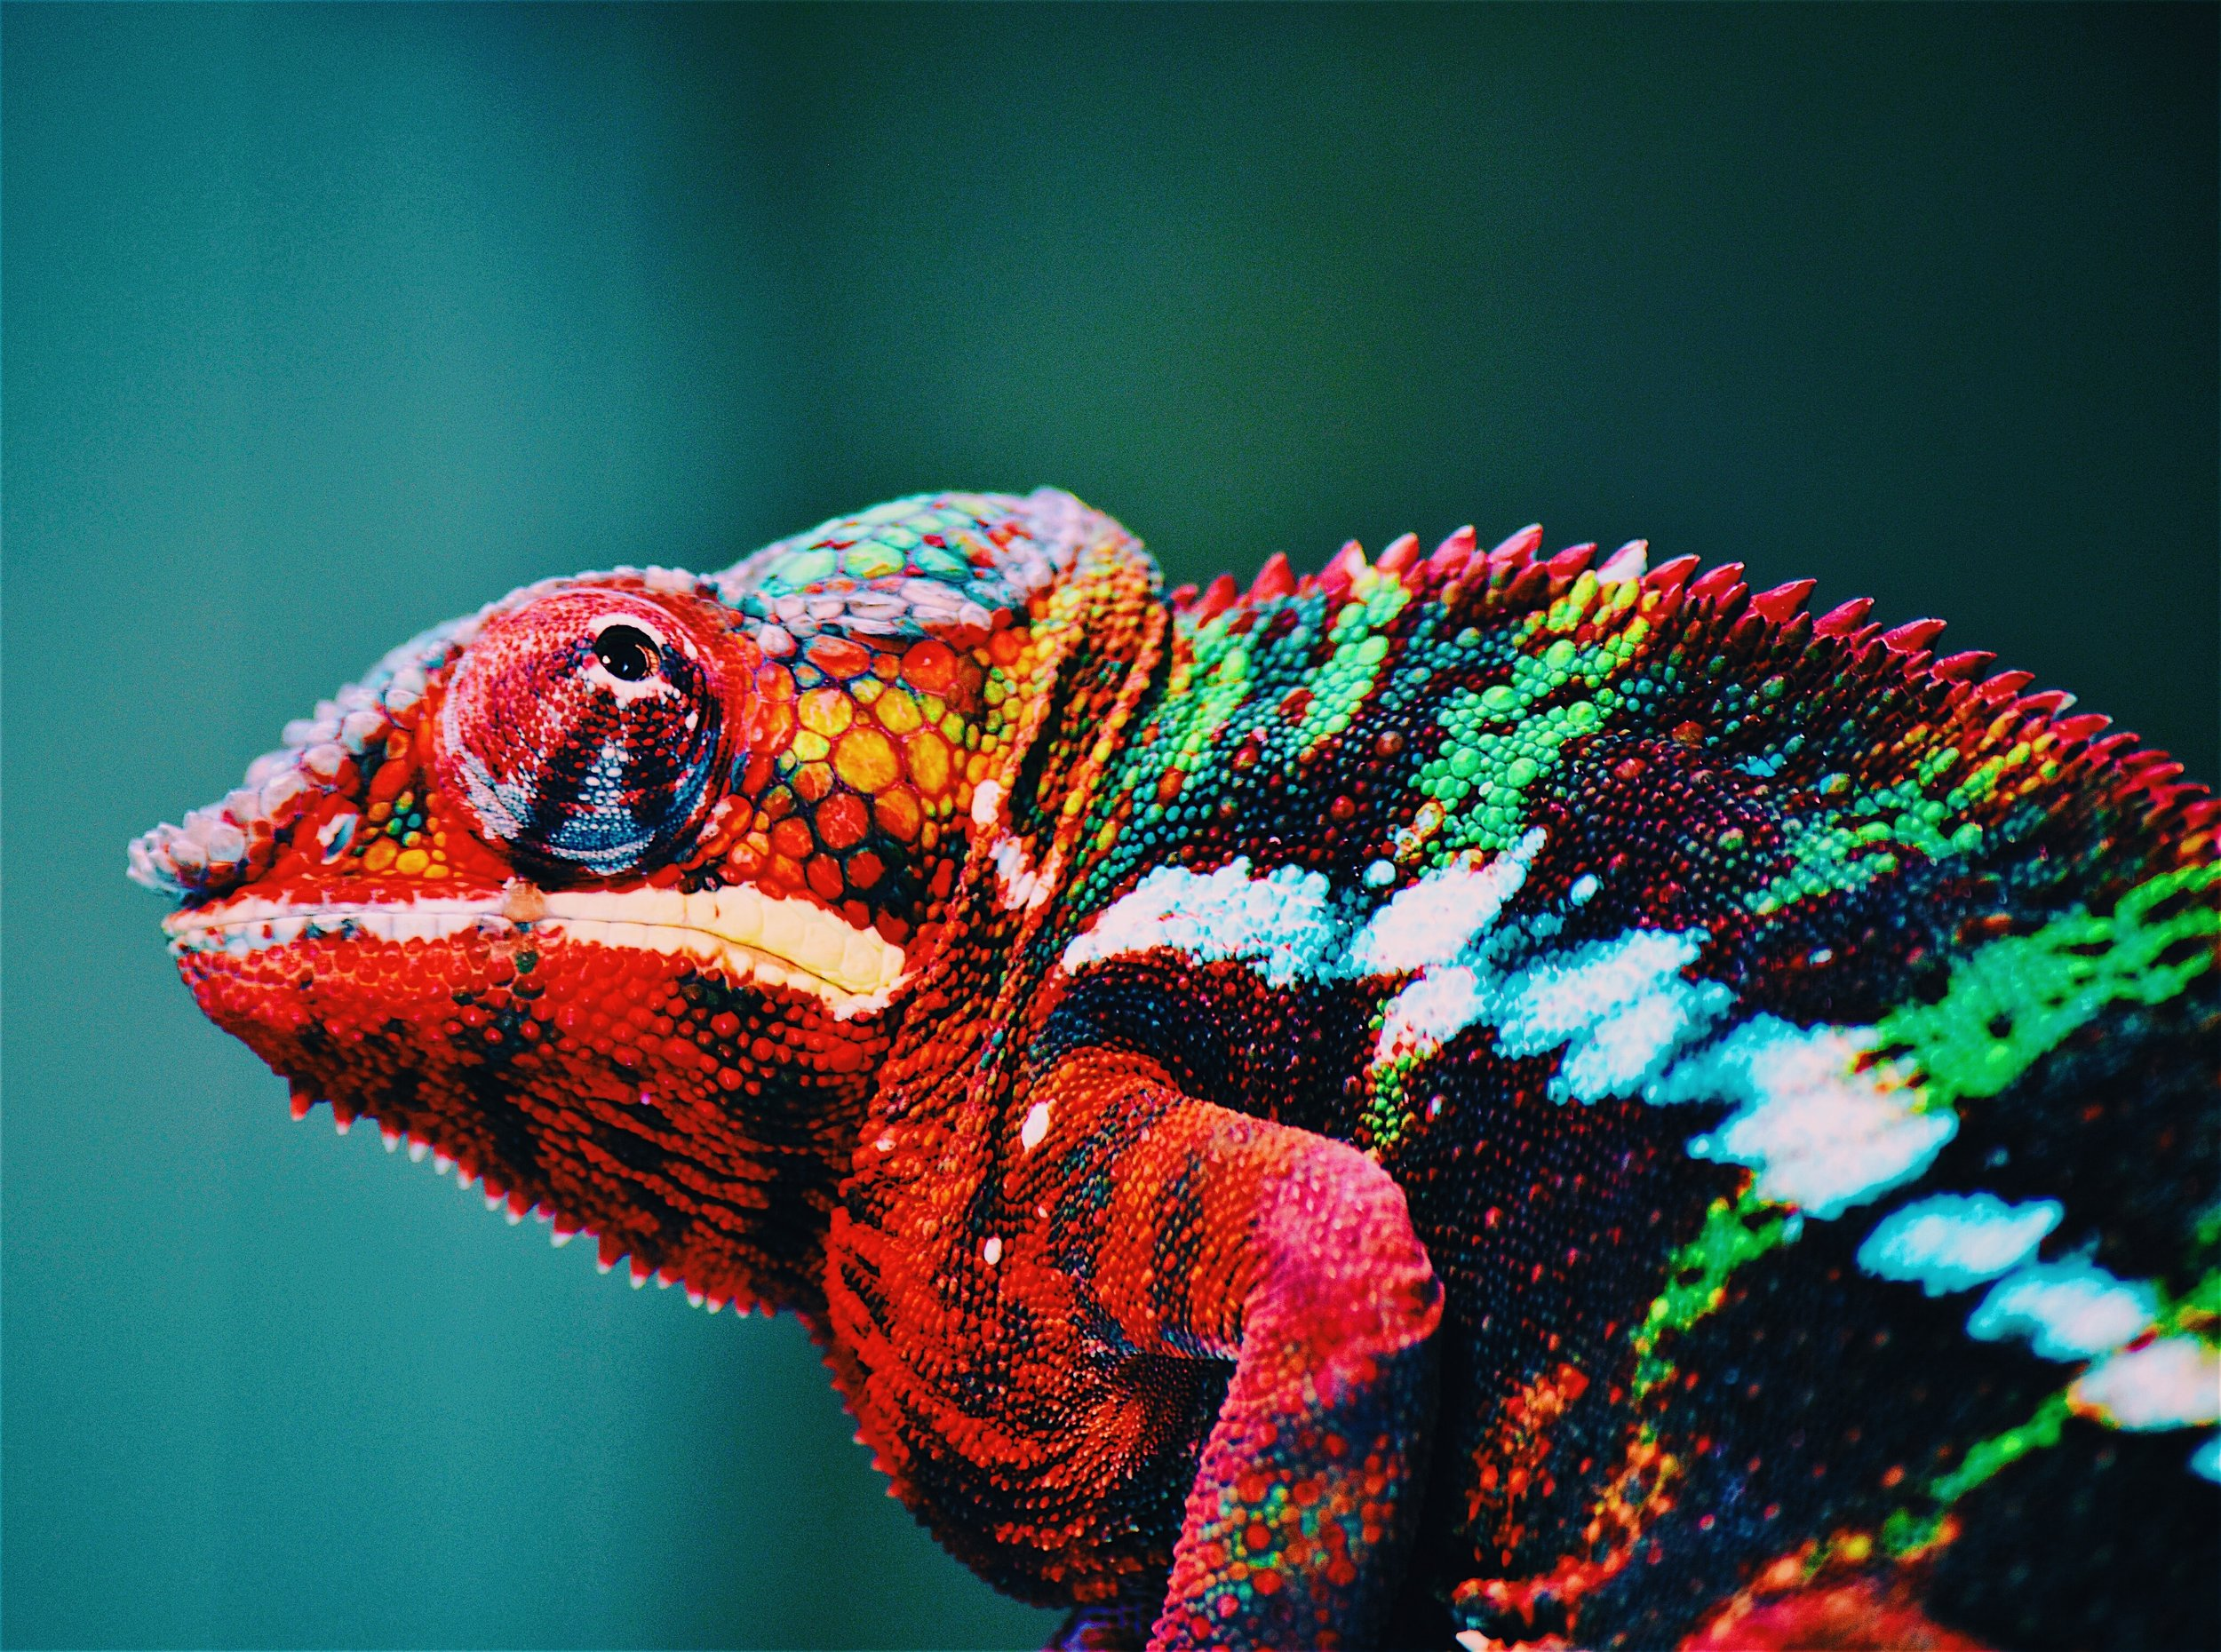 animal-blur-chameleon-567540.jpg